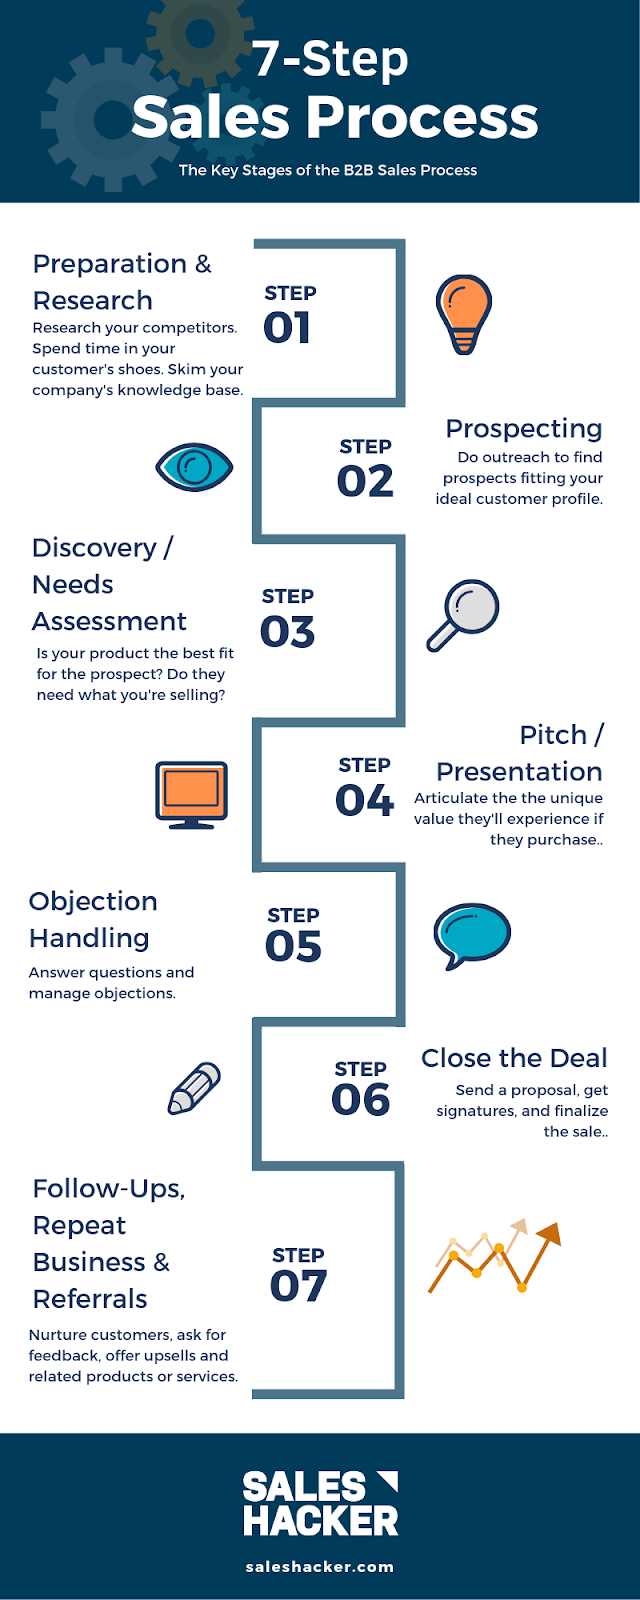 convert leads into meetings - 7-step sales process infographic